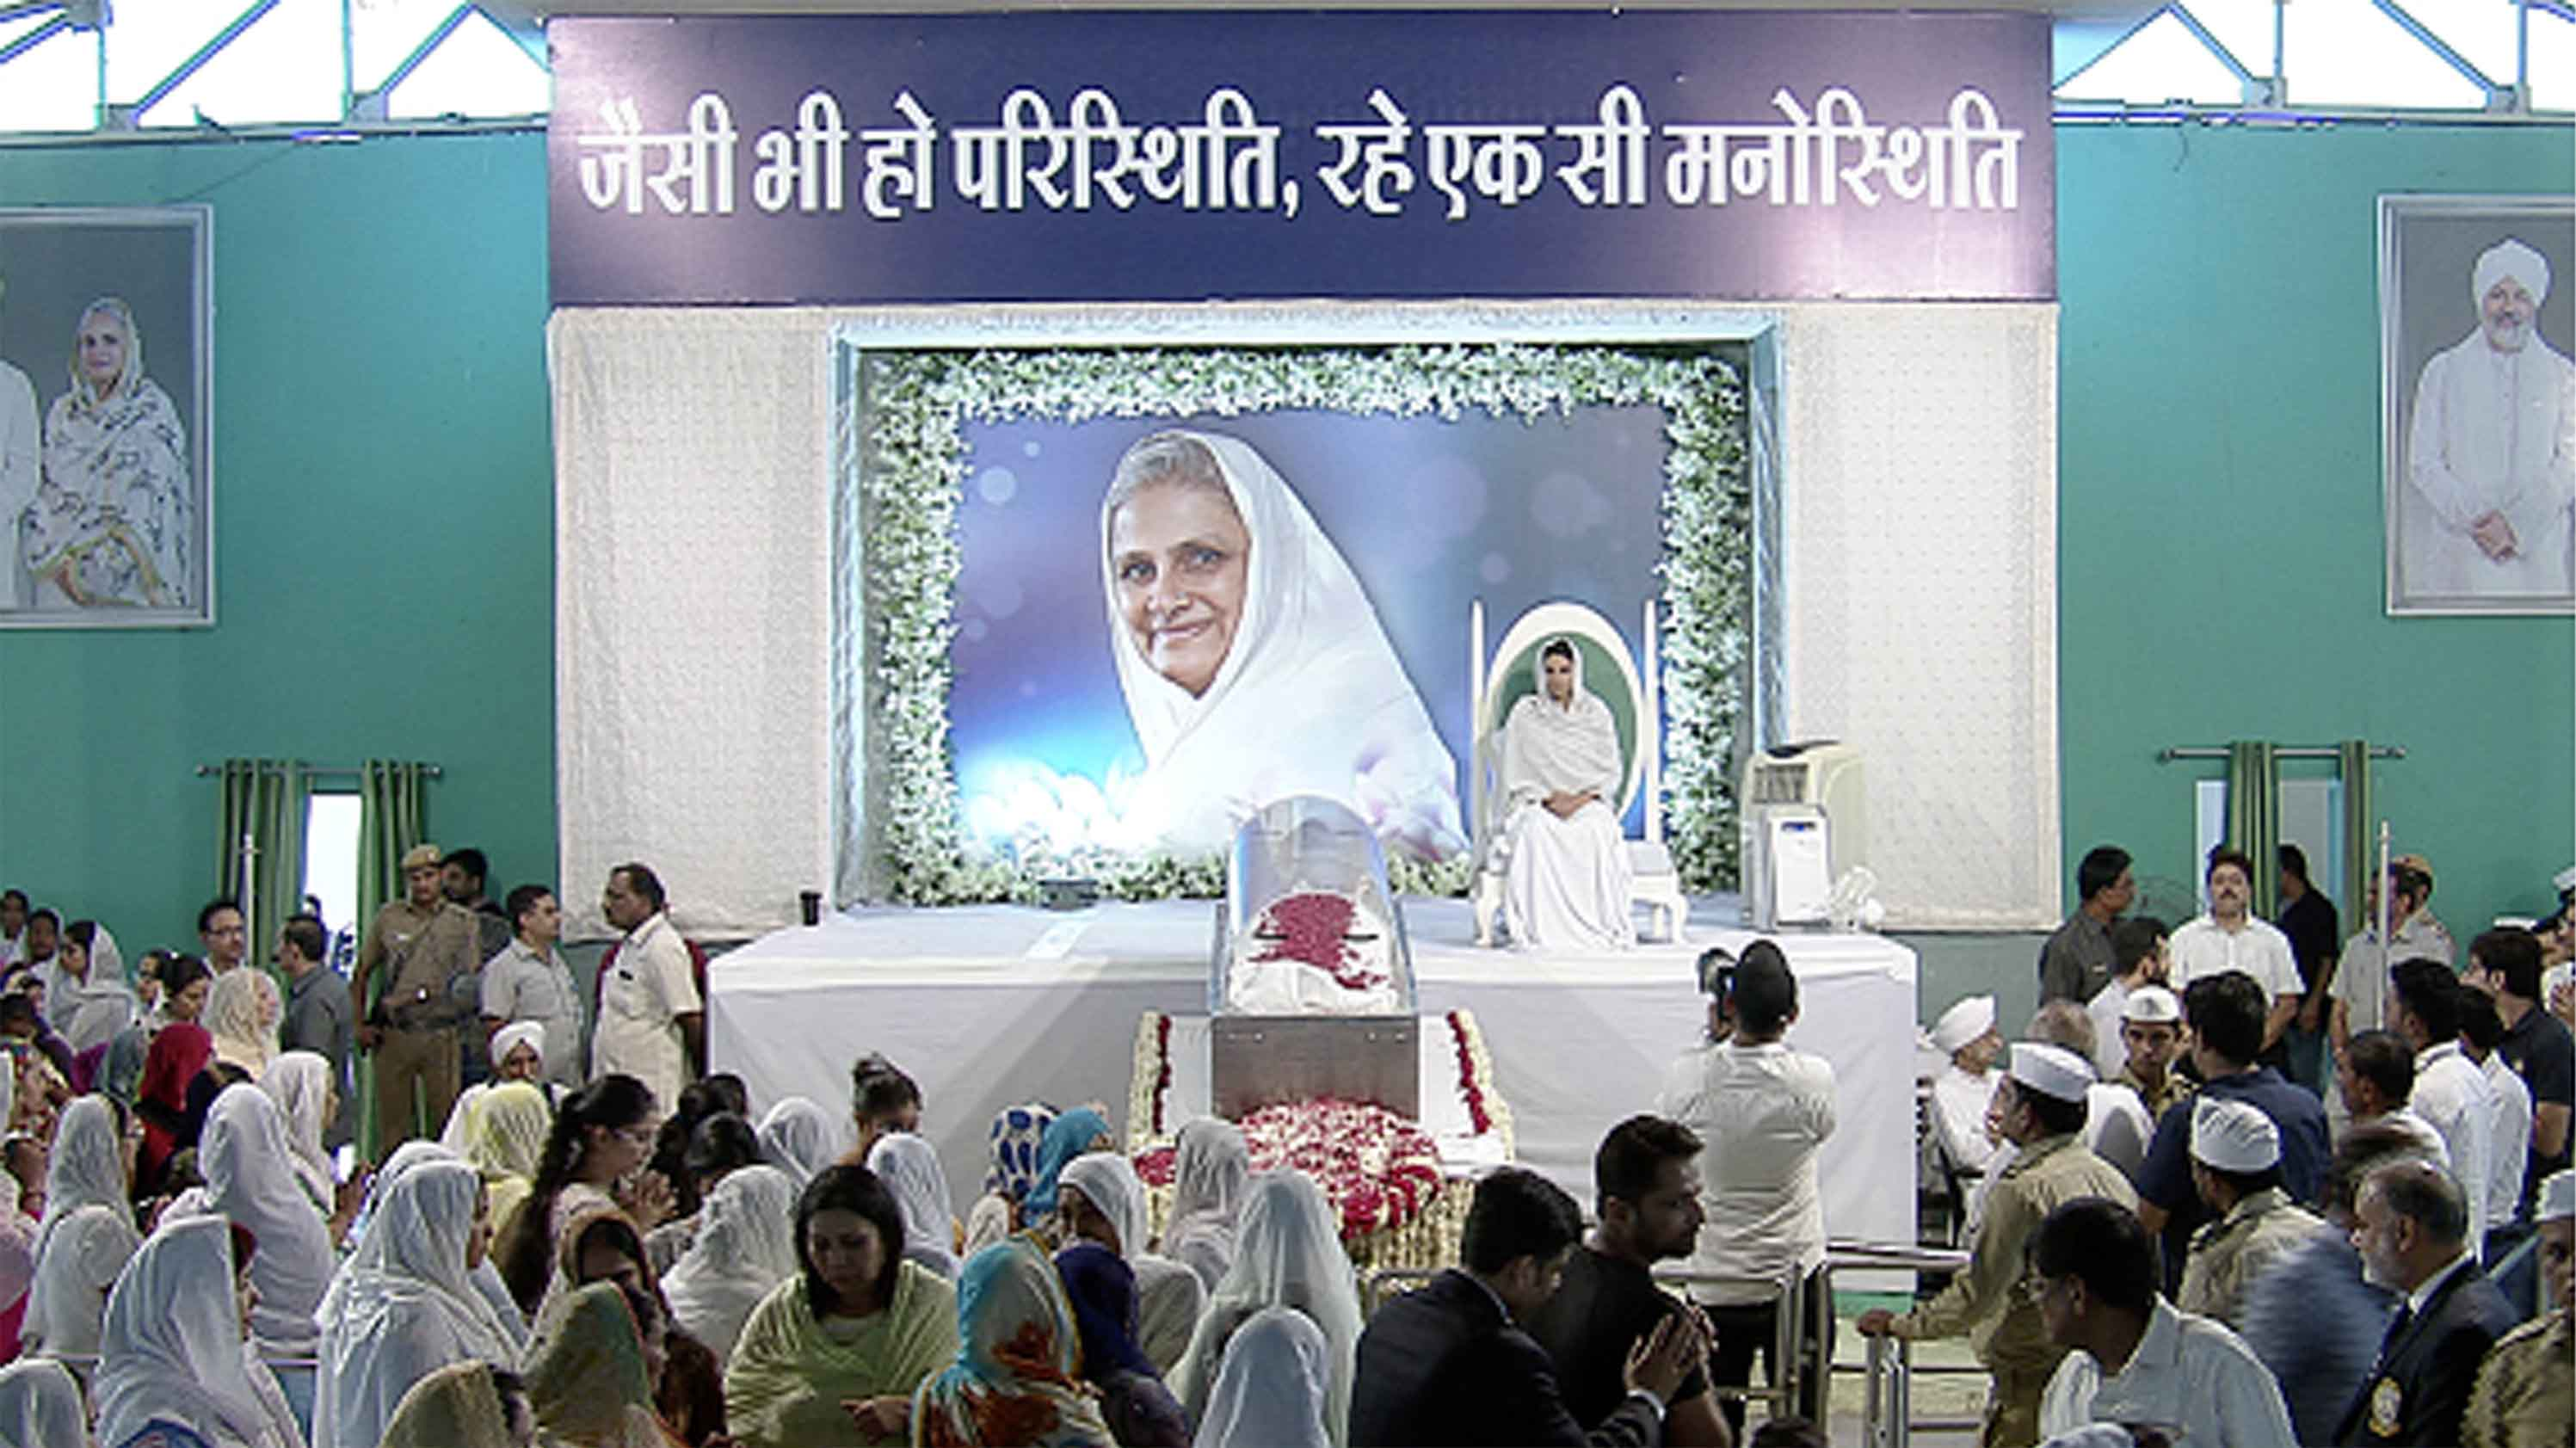 Antim Darshan Of Rev Mata Savinder Hardev Ji